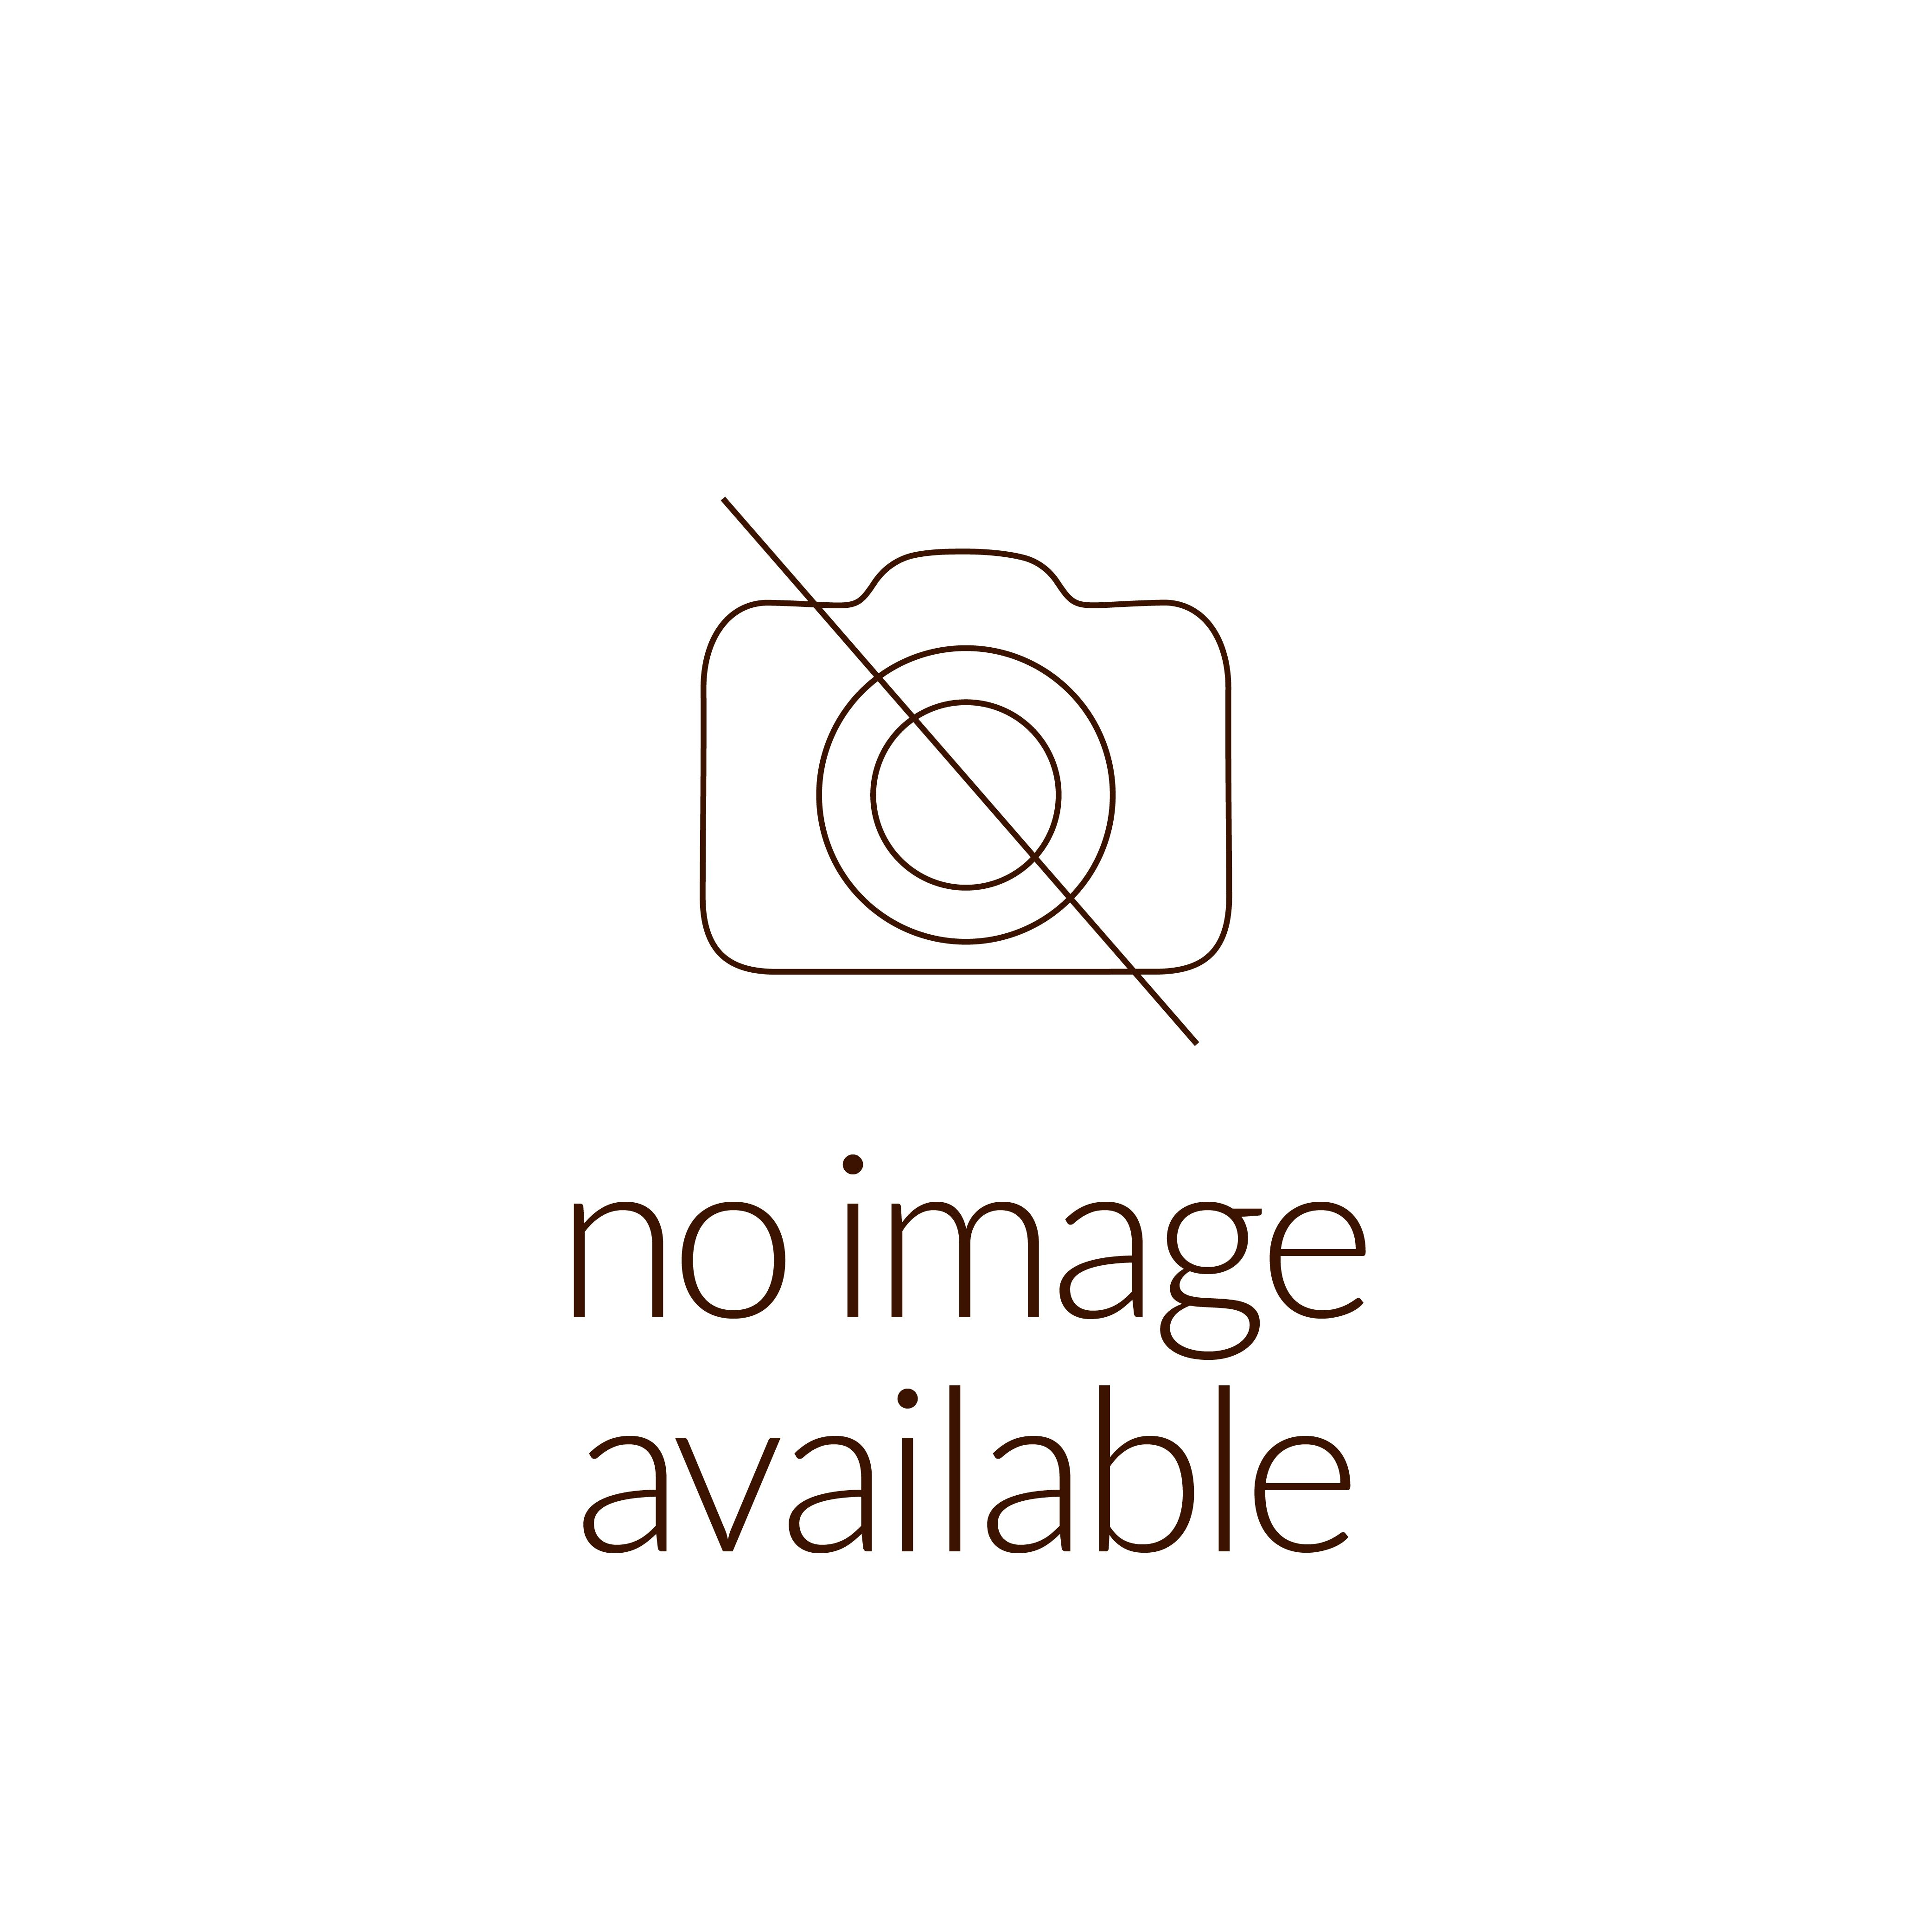 State Medal, Tree of Life, Holy Land Ancient Mosaics, Gold 9999, 38.7 mm, 1 oz. - Obverse